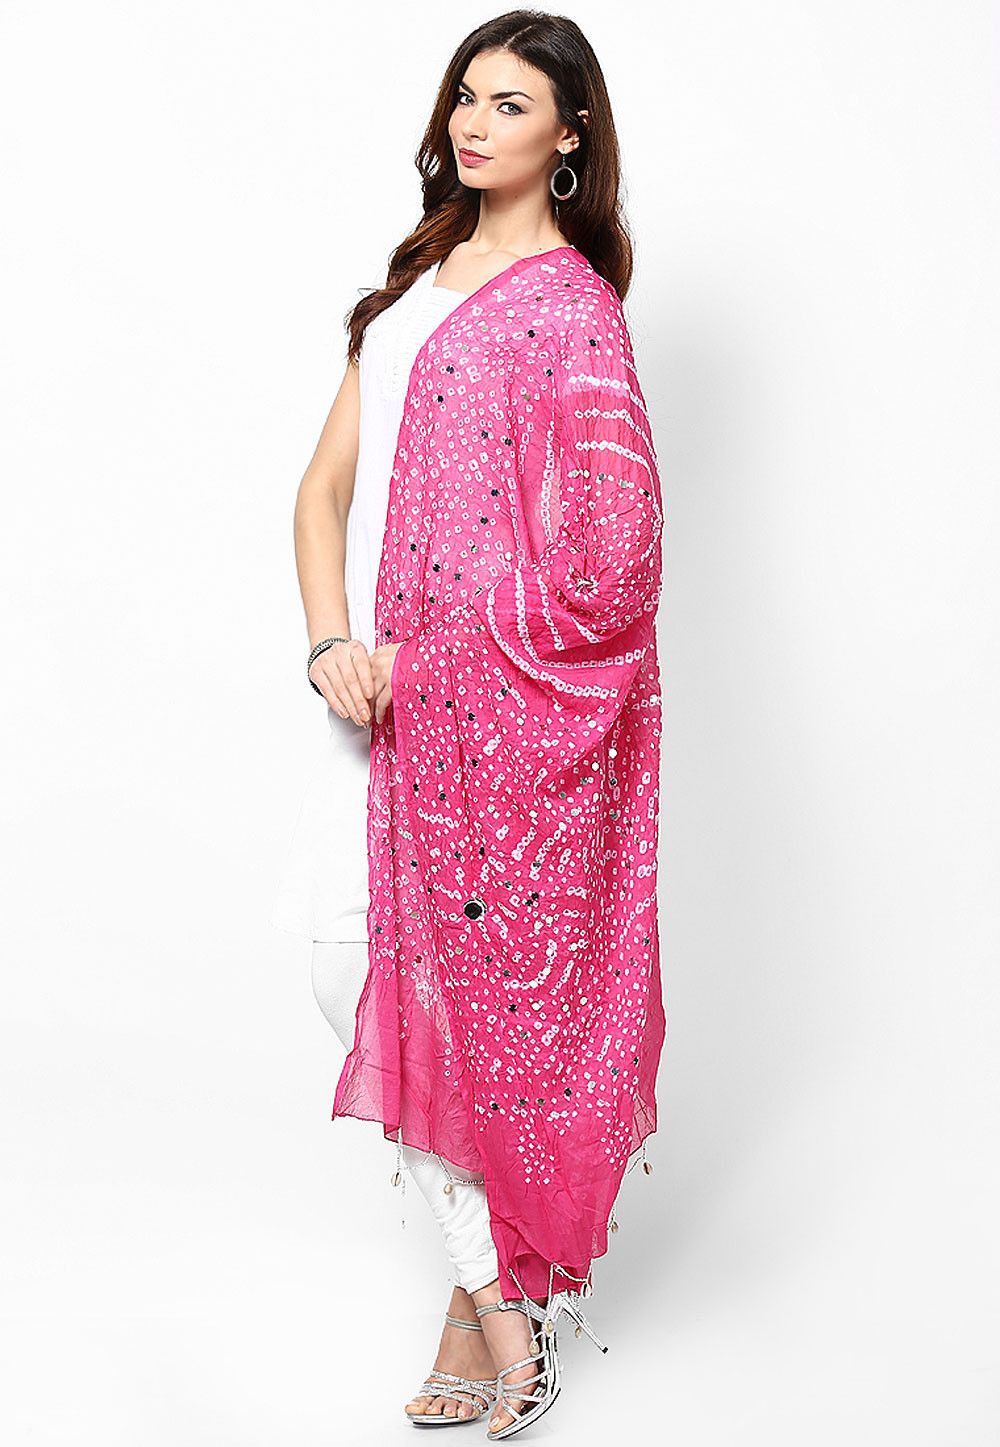 Bandhani Printed Cotton Dupatta in Pink